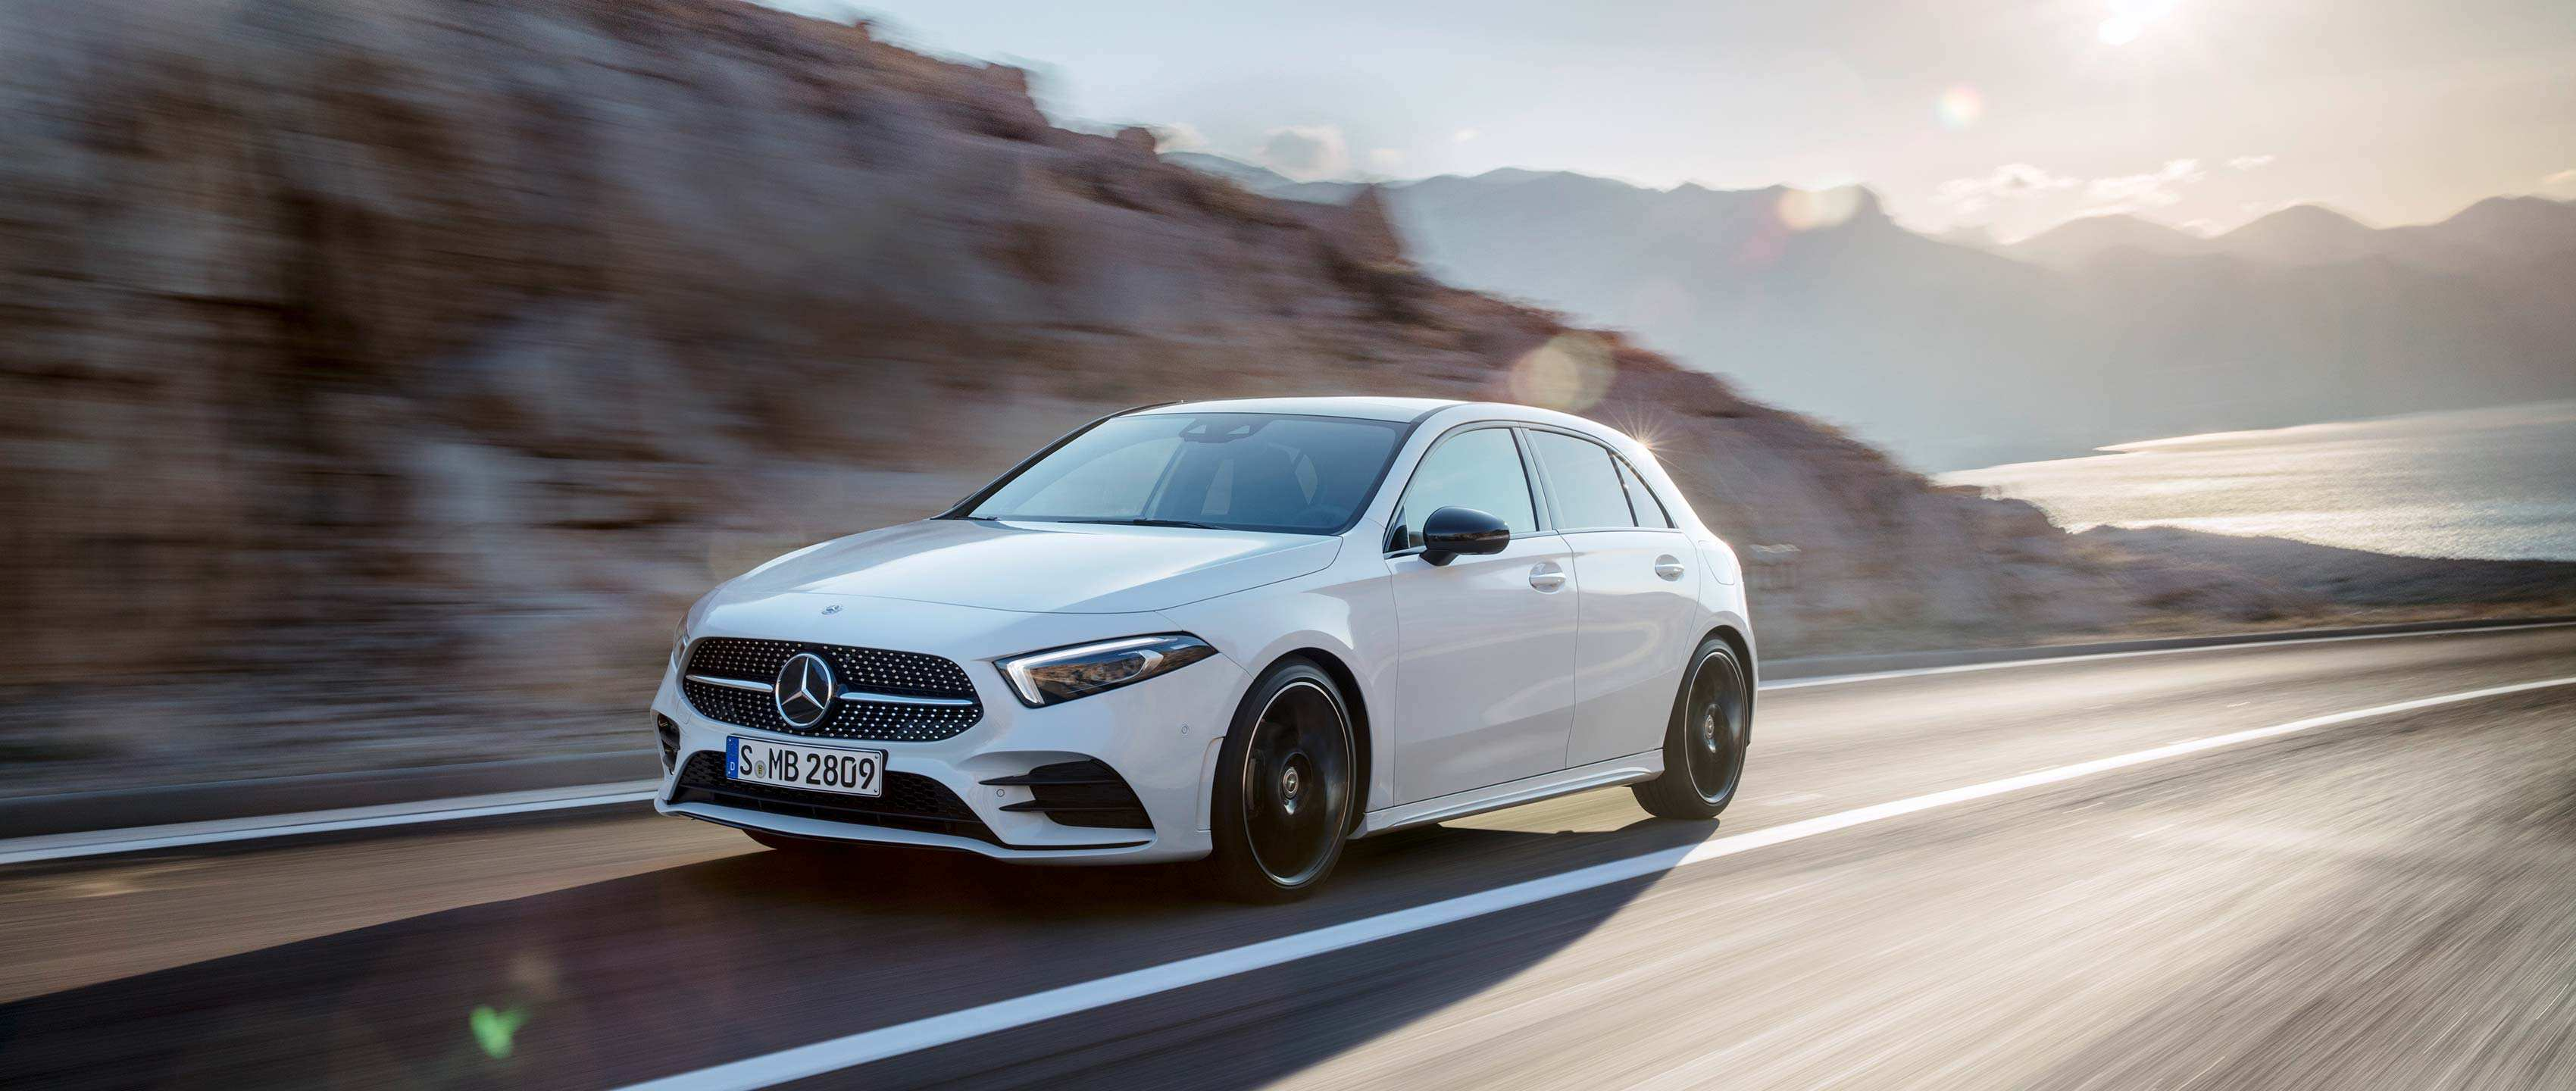 39 All New Mercedes A200 Amg Line 2019 Reviews with Mercedes A200 Amg Line 2019